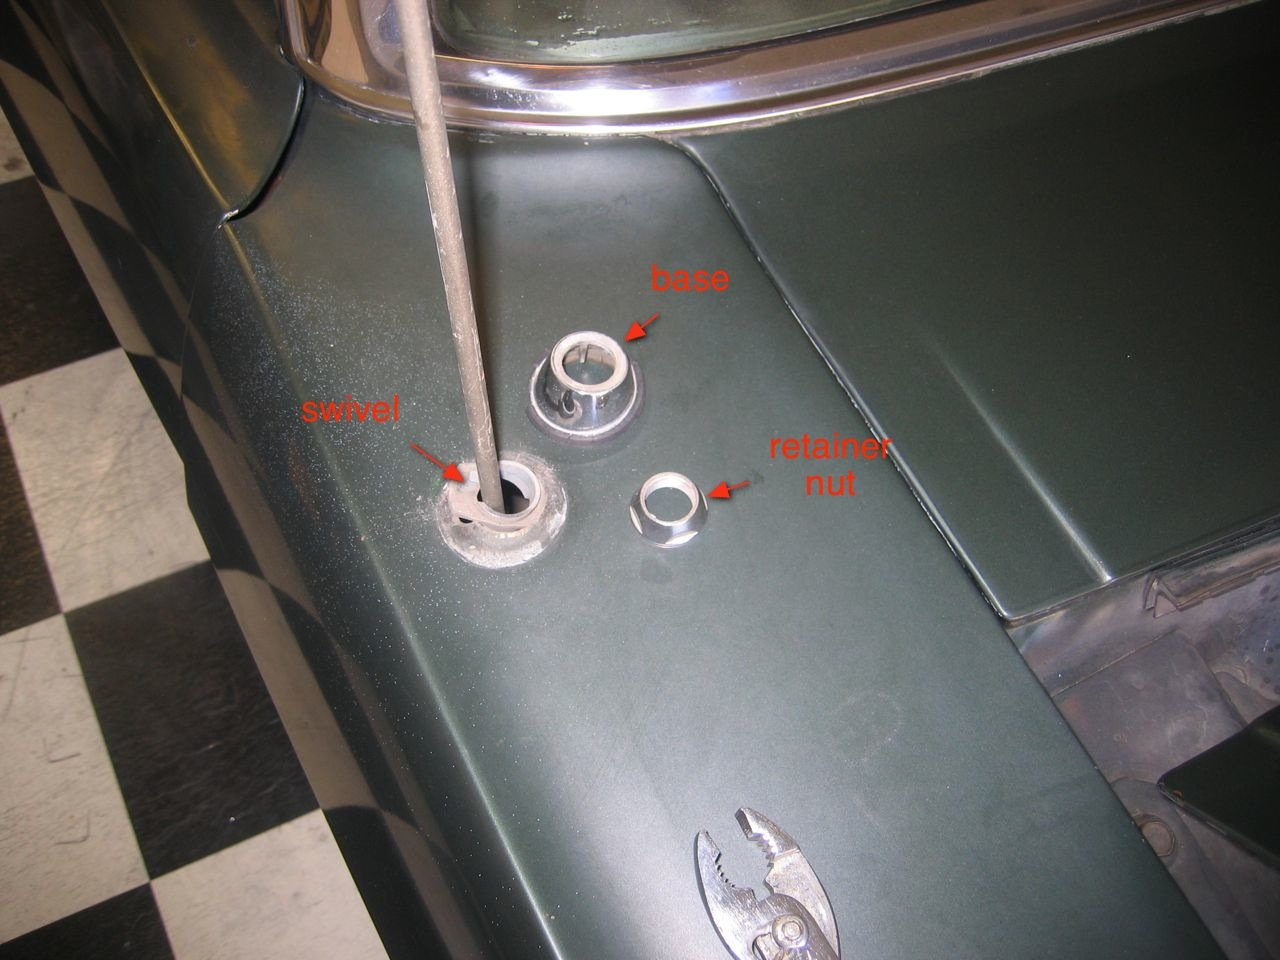 How To I Take Off The Radio Antenna 1965 Mustang Original